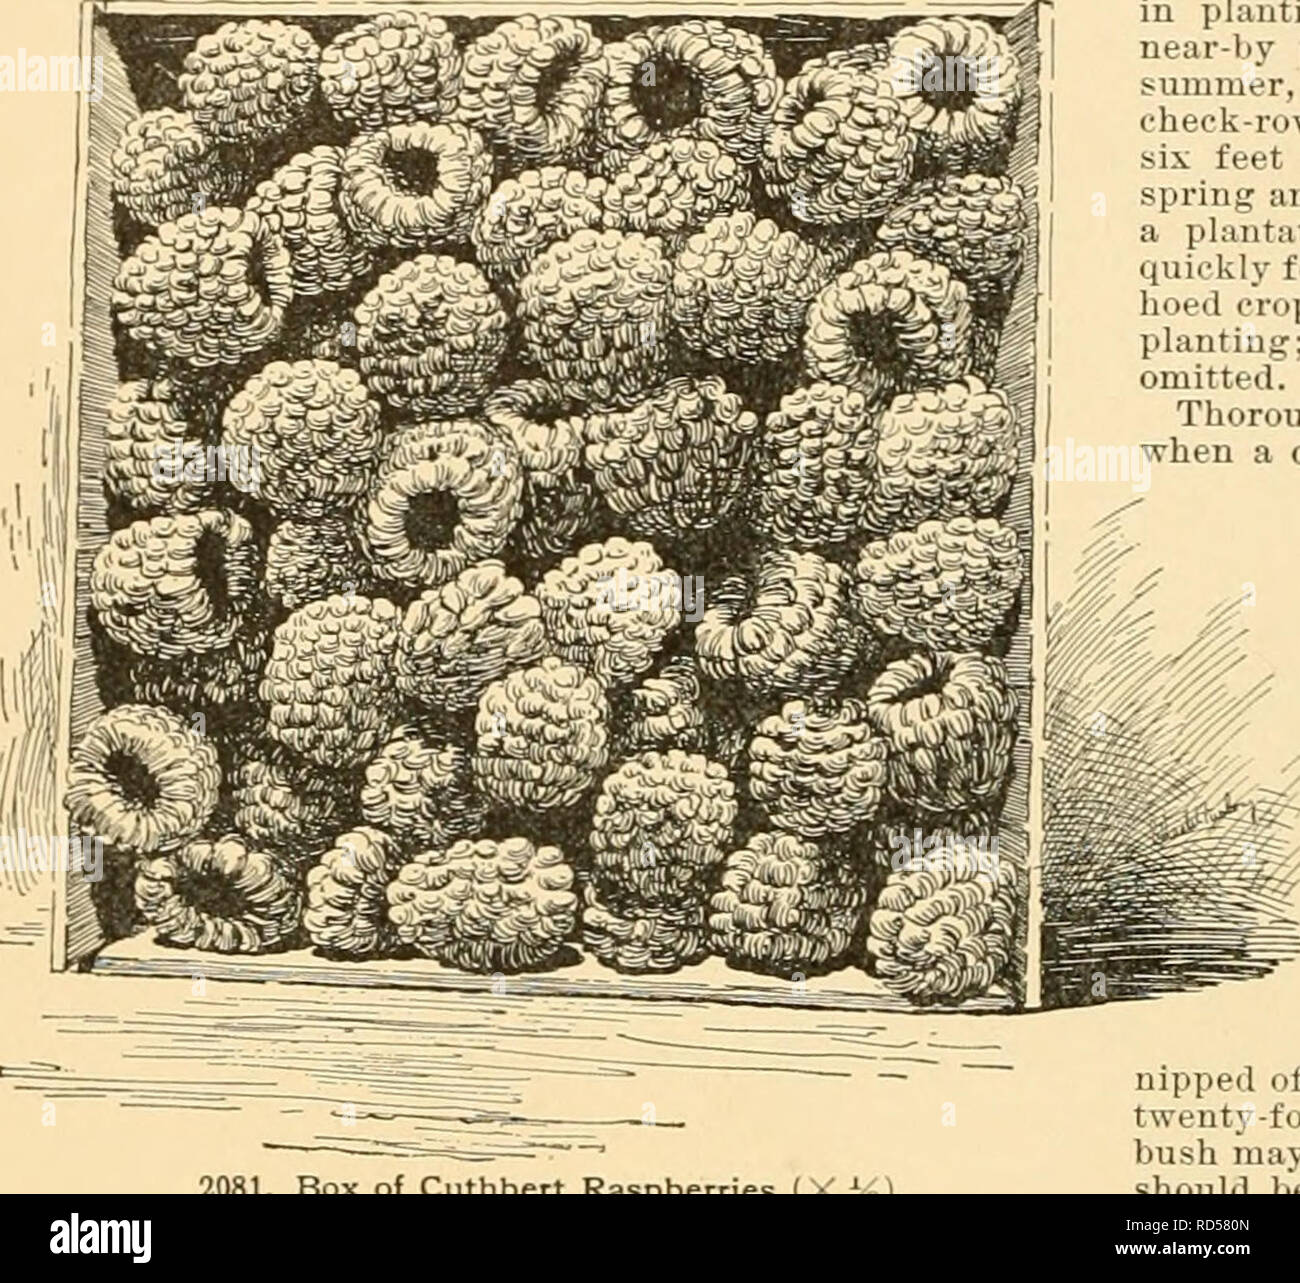 . Cyclopedia of American horticulture : comprising suggestions for cultivation of horticultural plants, descriptions of the species of fruits, vegetables, flowers, and ornamental plants sold in the United States and Canada, together with geographical and biographical sketches. Gardening; Horticulture; Horticulture; Horticulture. 1502 KASPBERRY conditions would not warrant the growing of fruit to be sold fresh. Hybrids of li. strir/osus and B. occiden- talis âknown as M. Herilectiis â have given the purple- cane class, of which Shaffer (Fig. 2082) is a leading example. For further note.s on spe - Stock Image